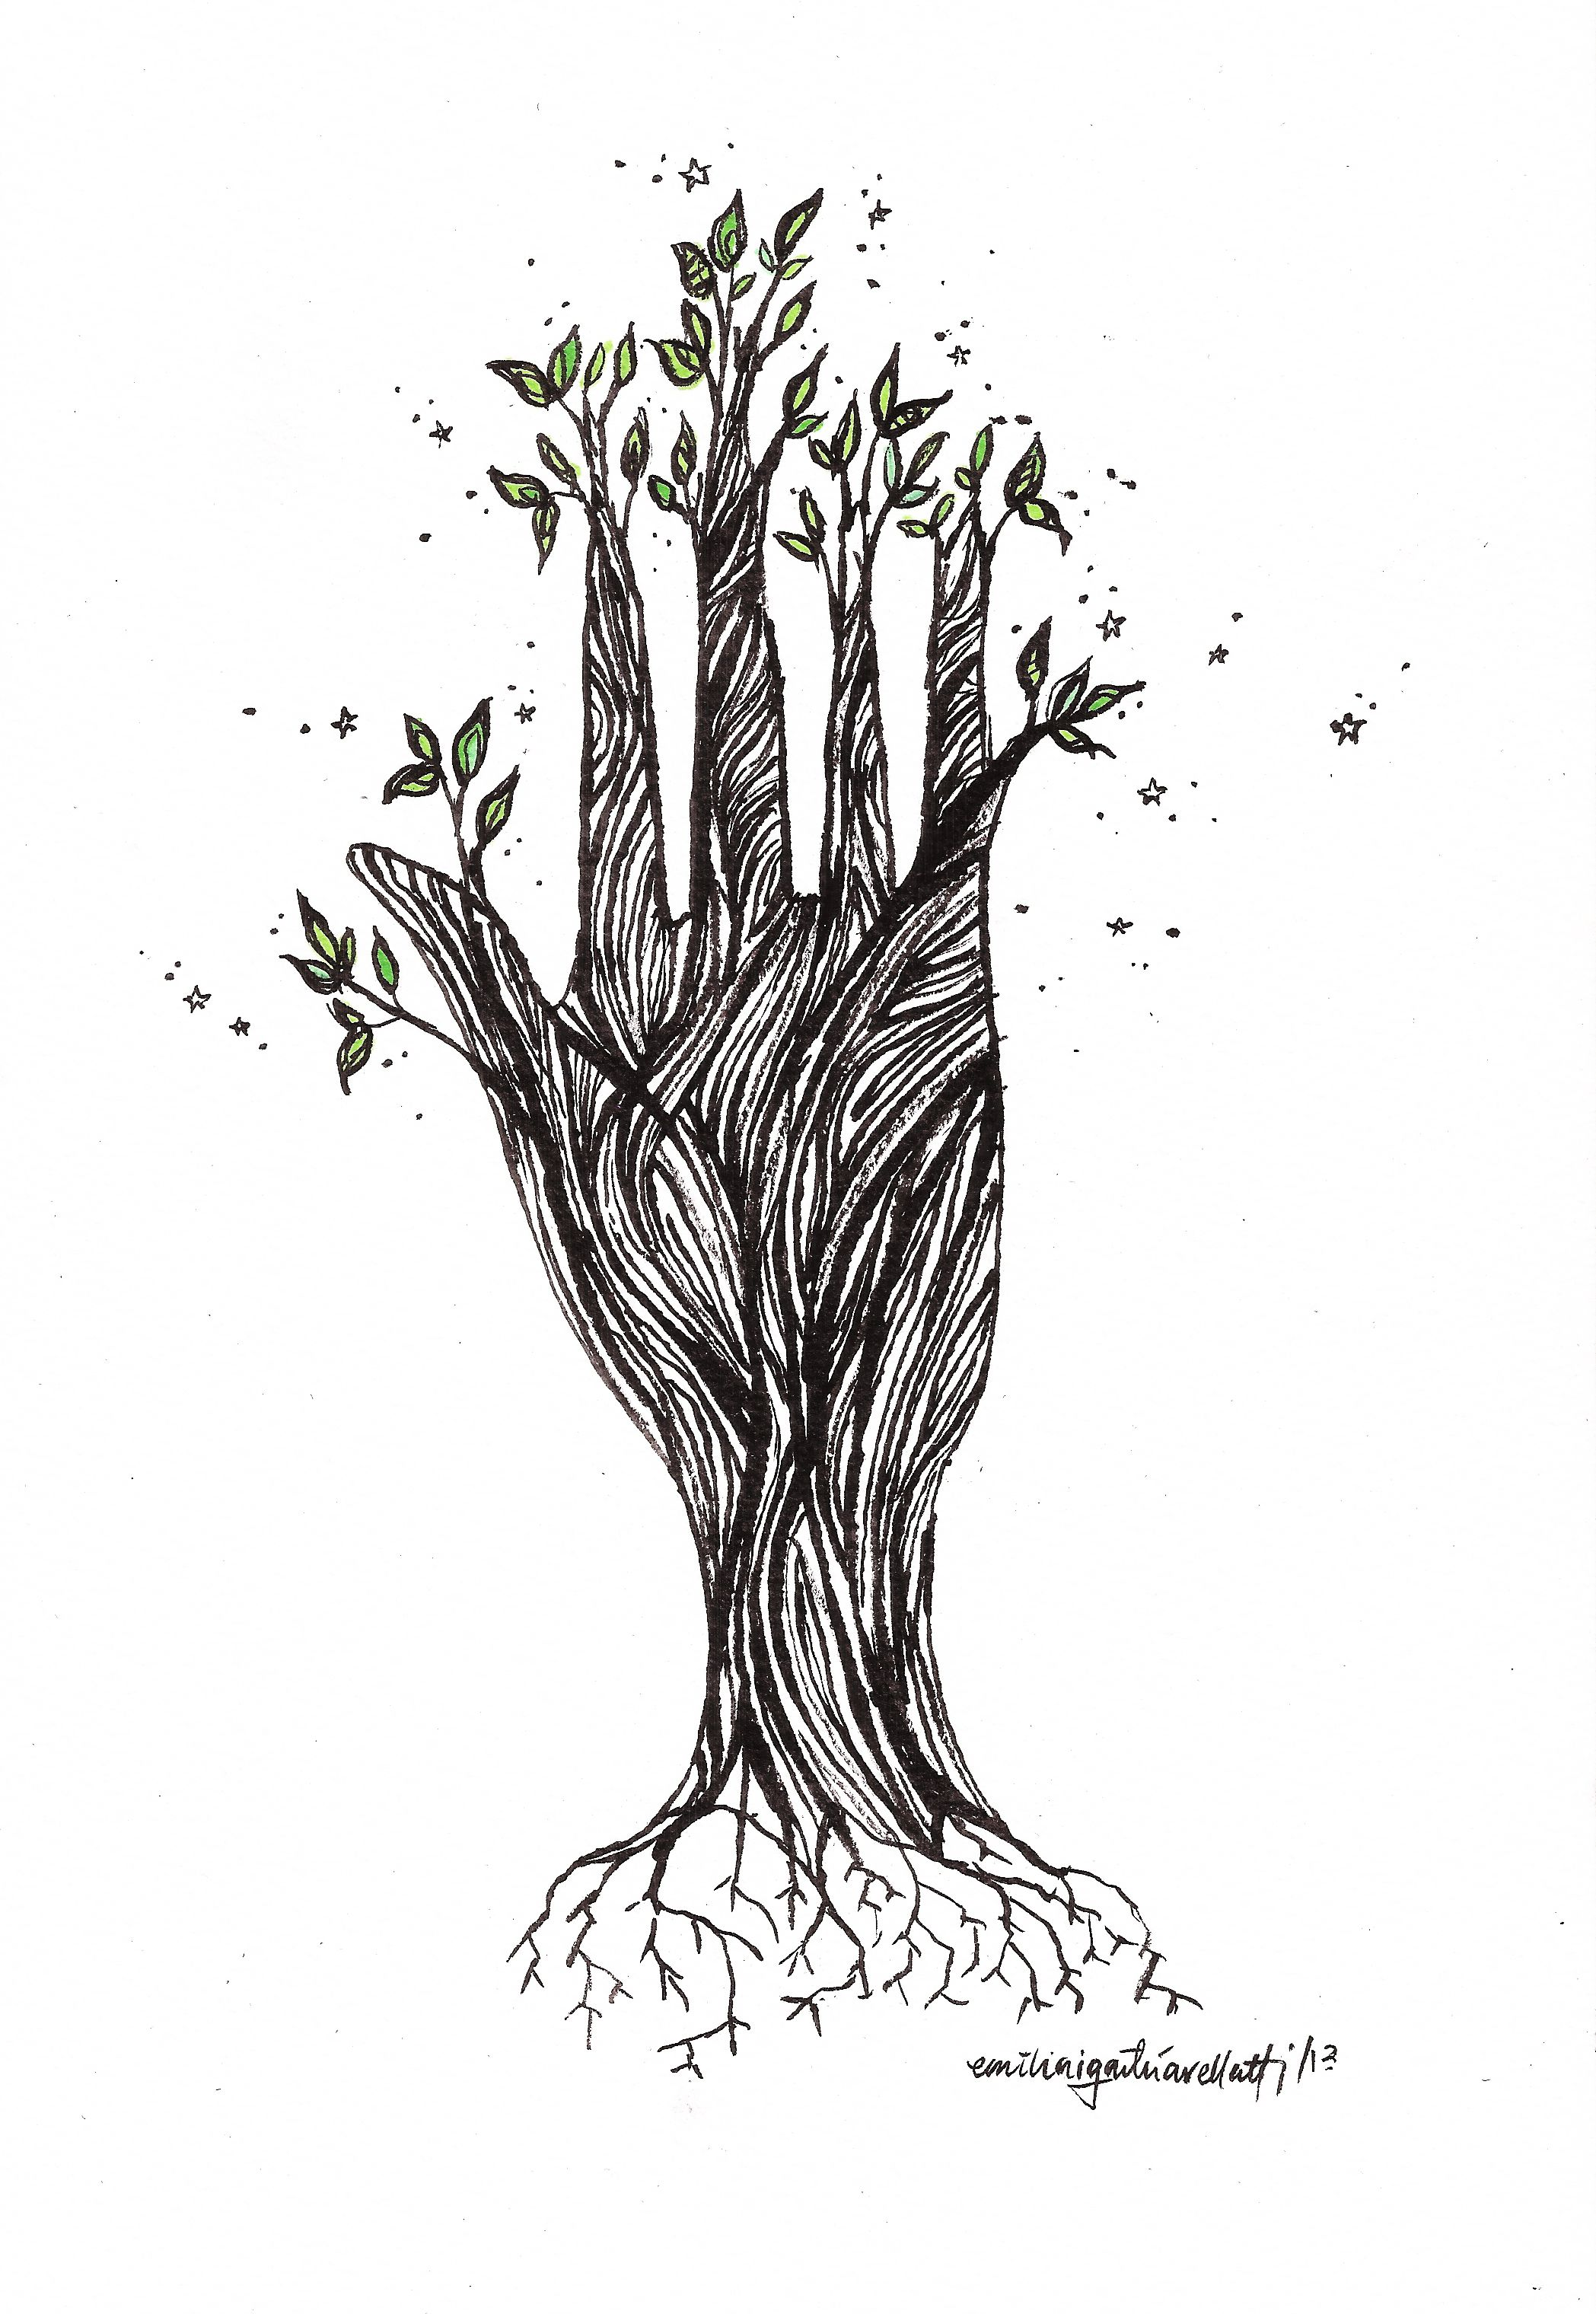 Roots of life. #nature #plants #life #hand #drawing #